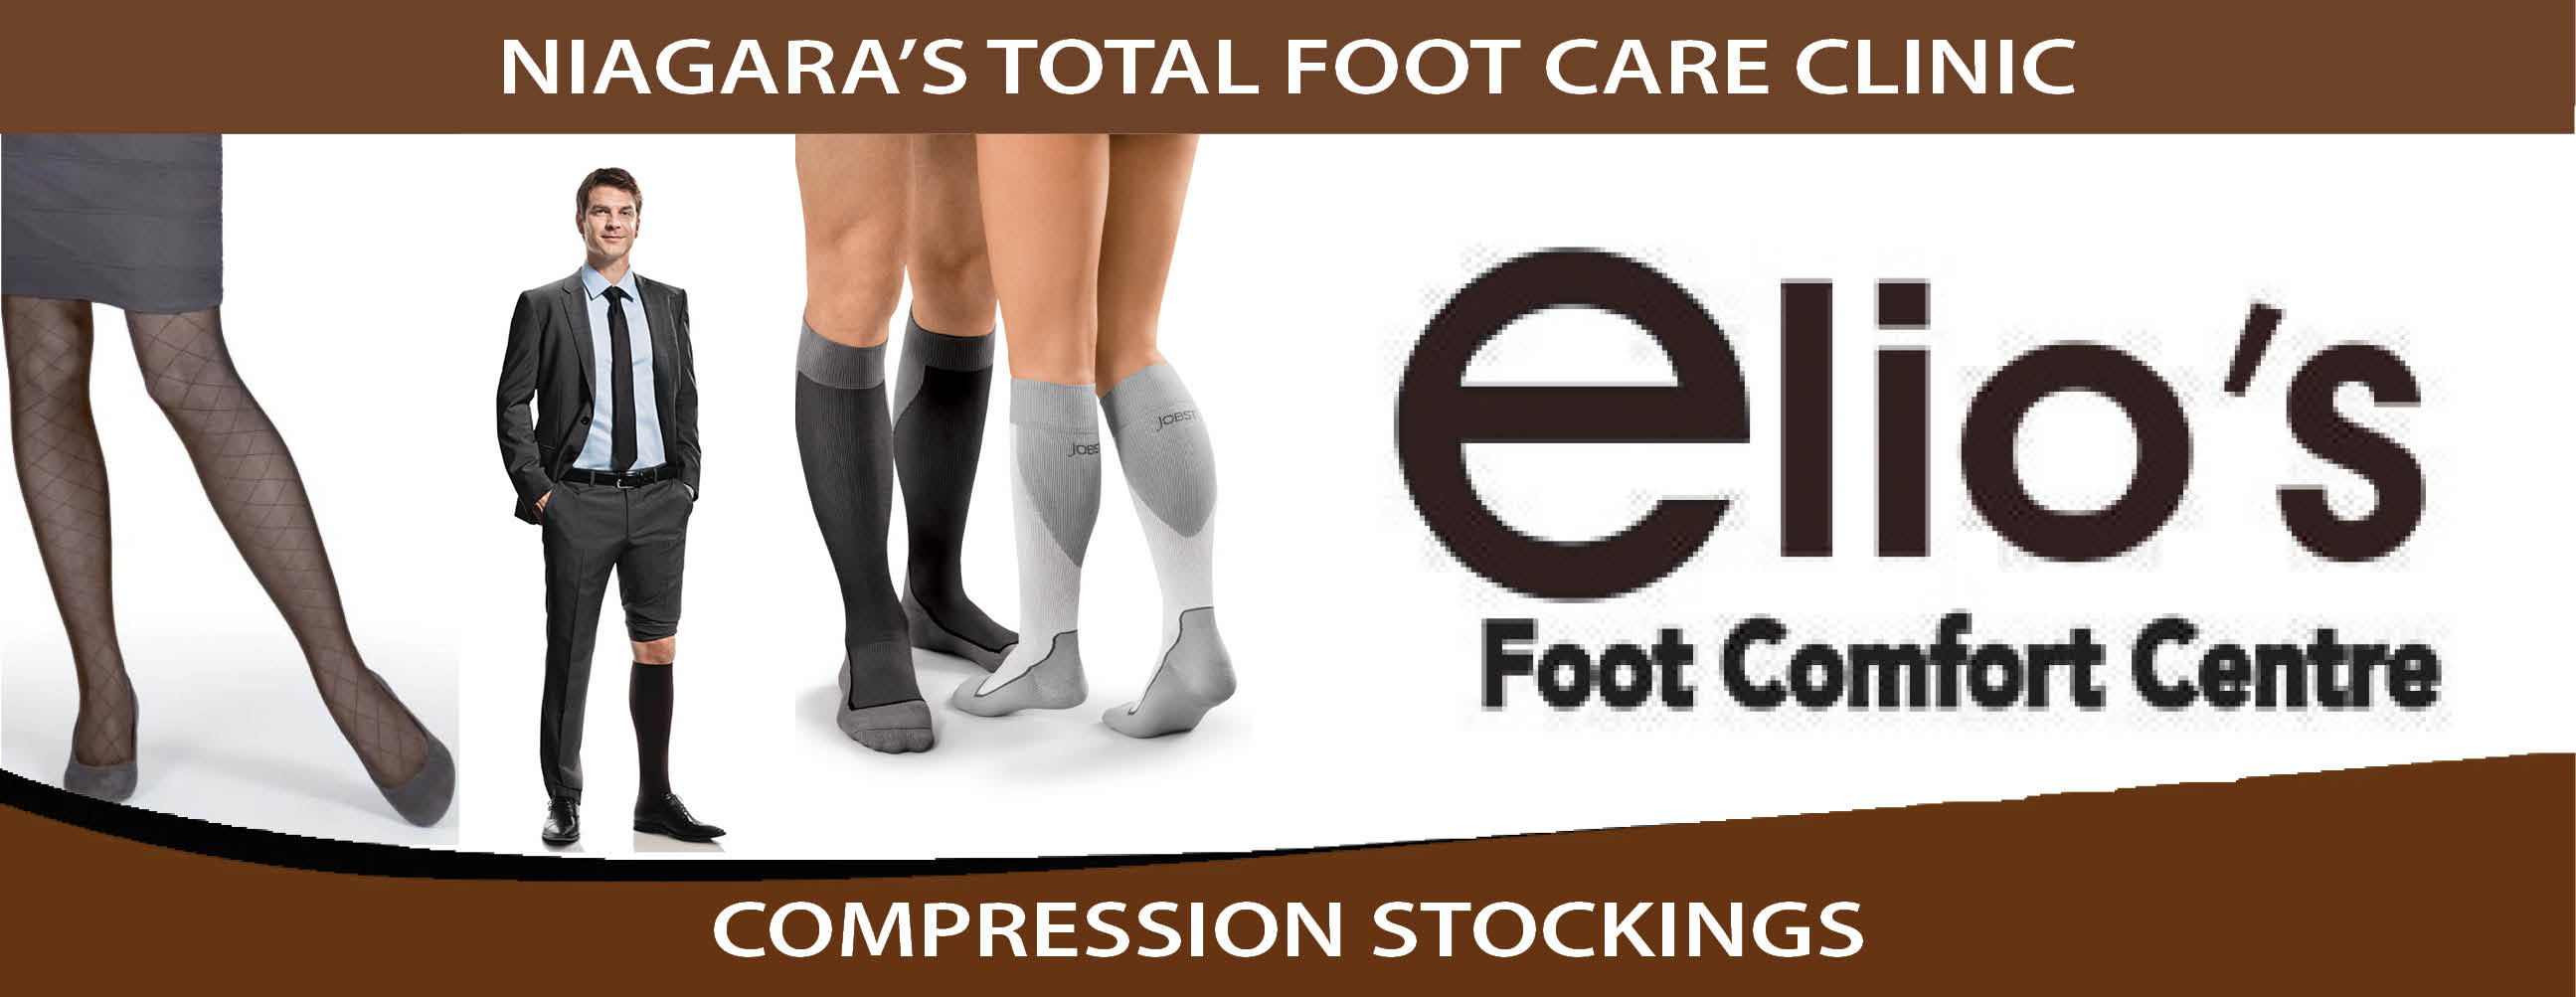 Compression Socks - Elio's Foot Comfort